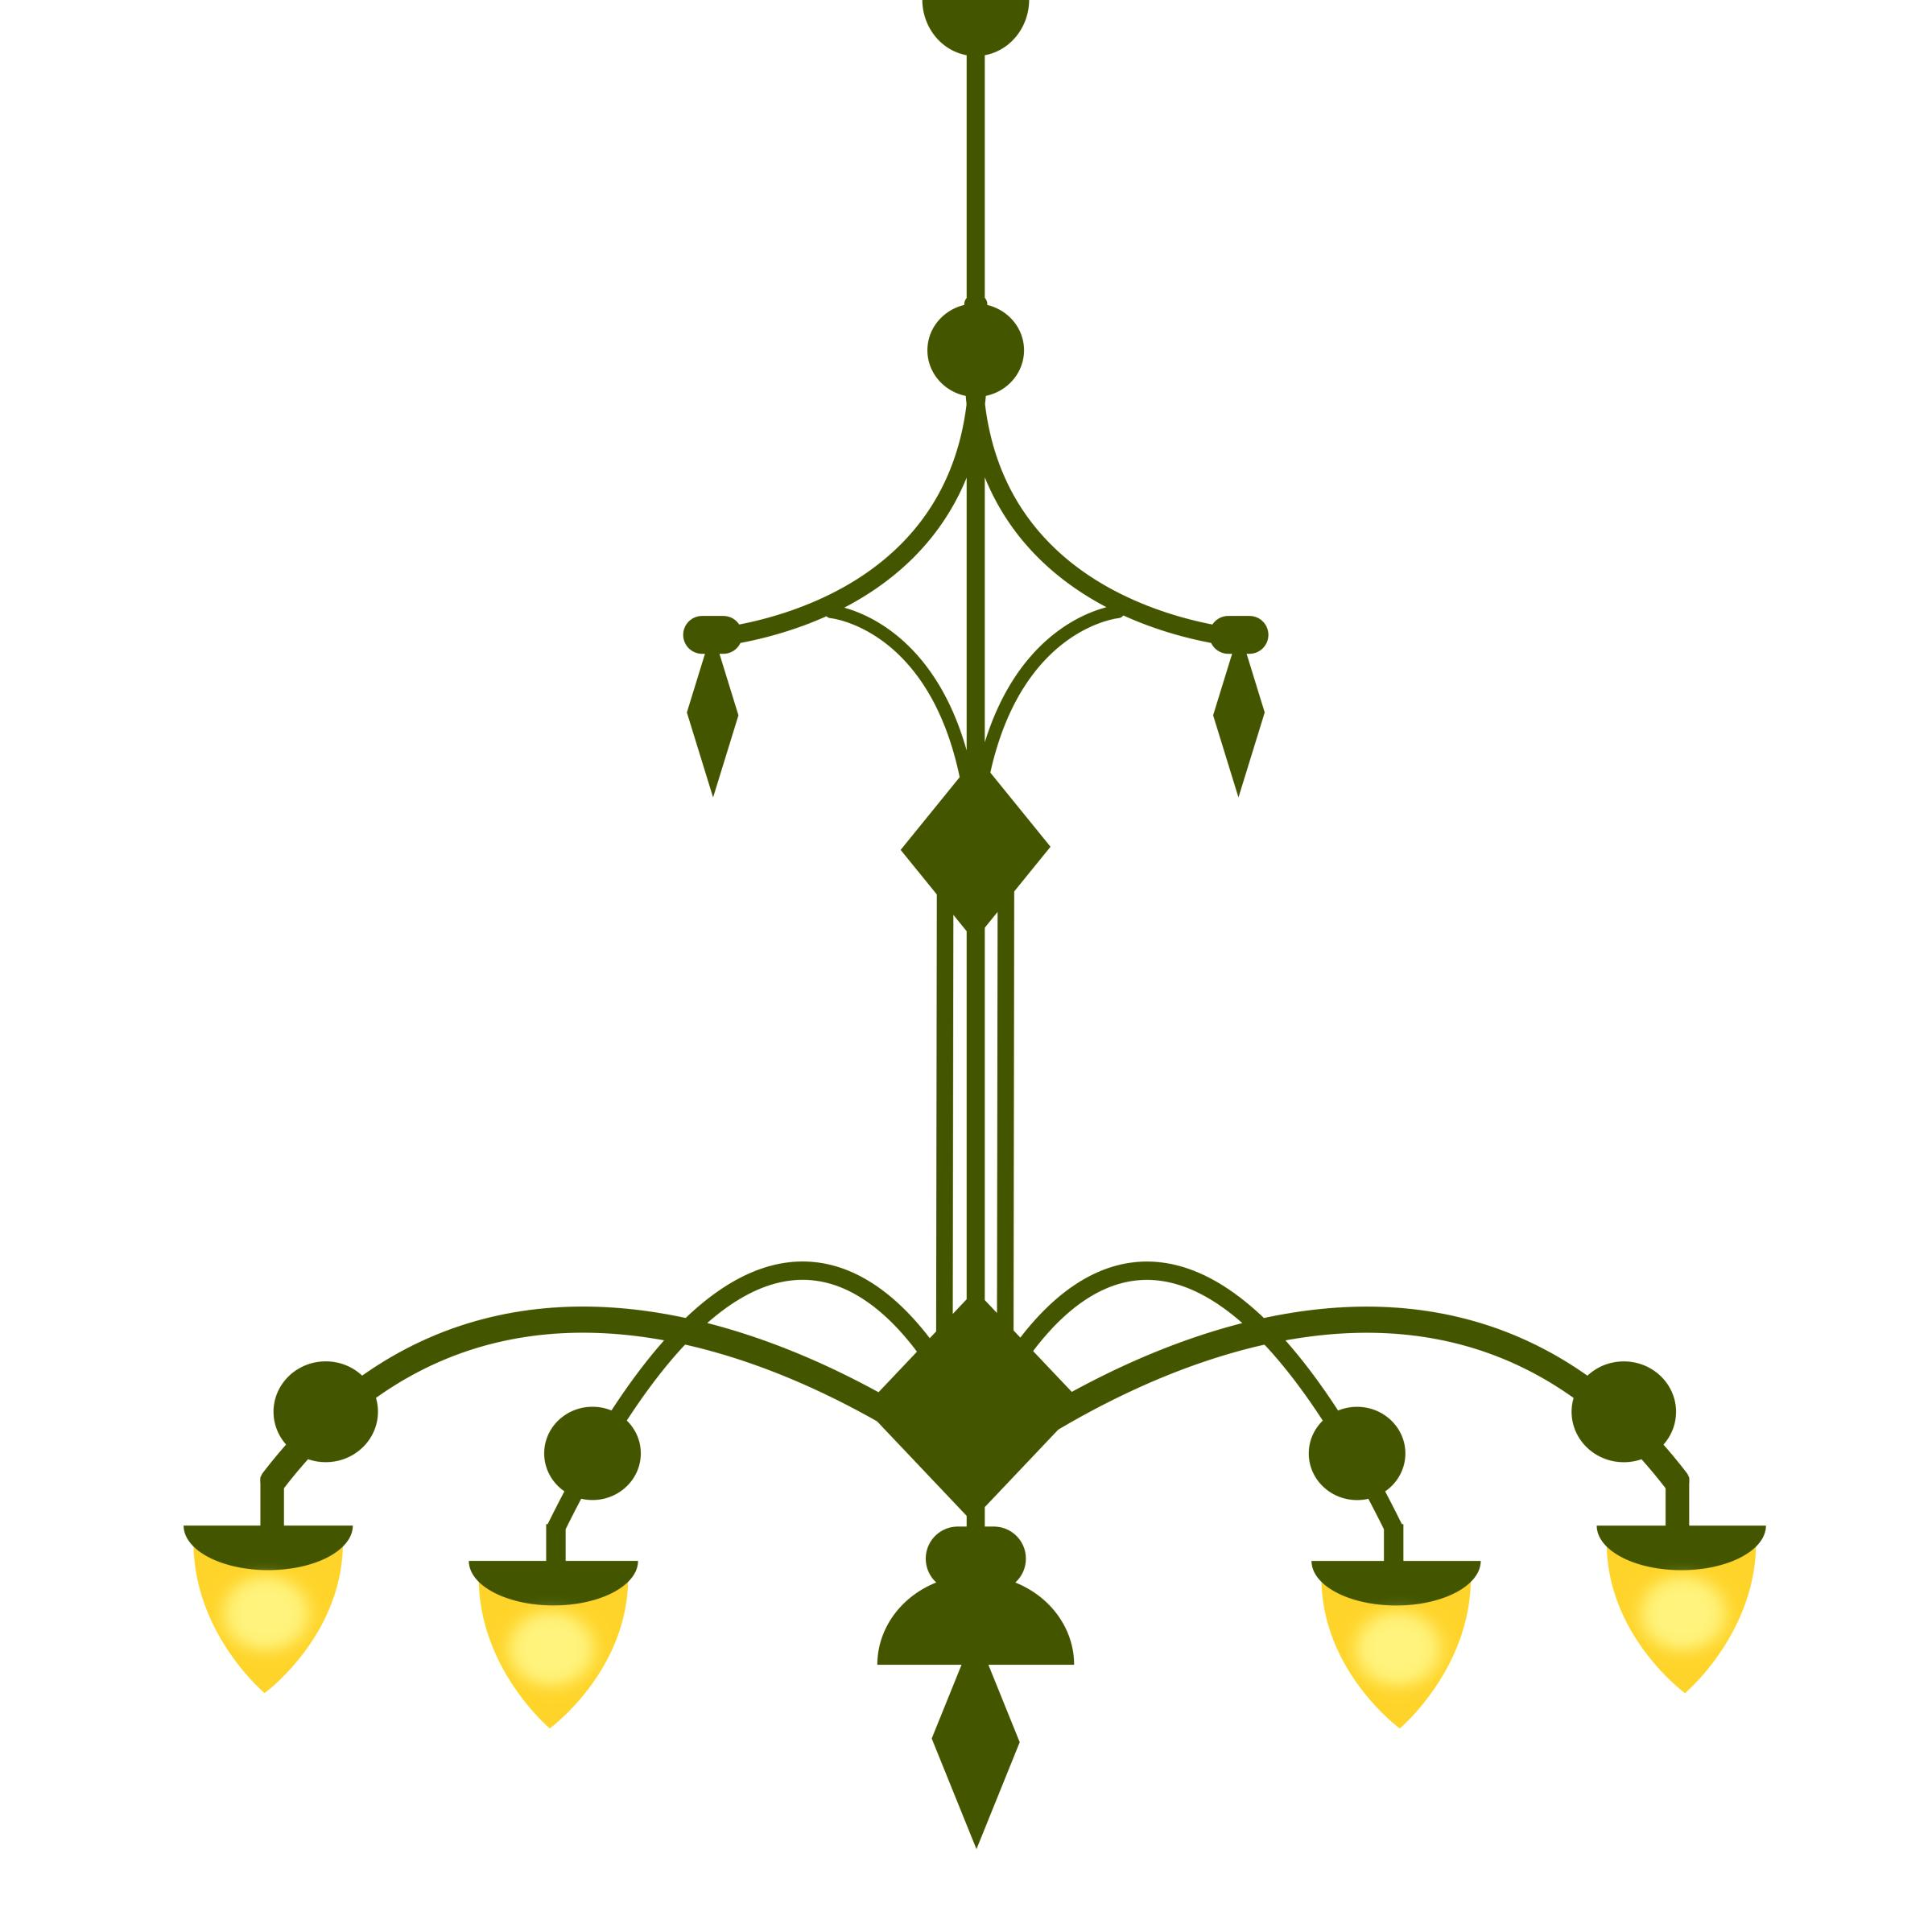 2400x2400 Ornate Chandelier, With 4 Lamps Version 1 Icons Png